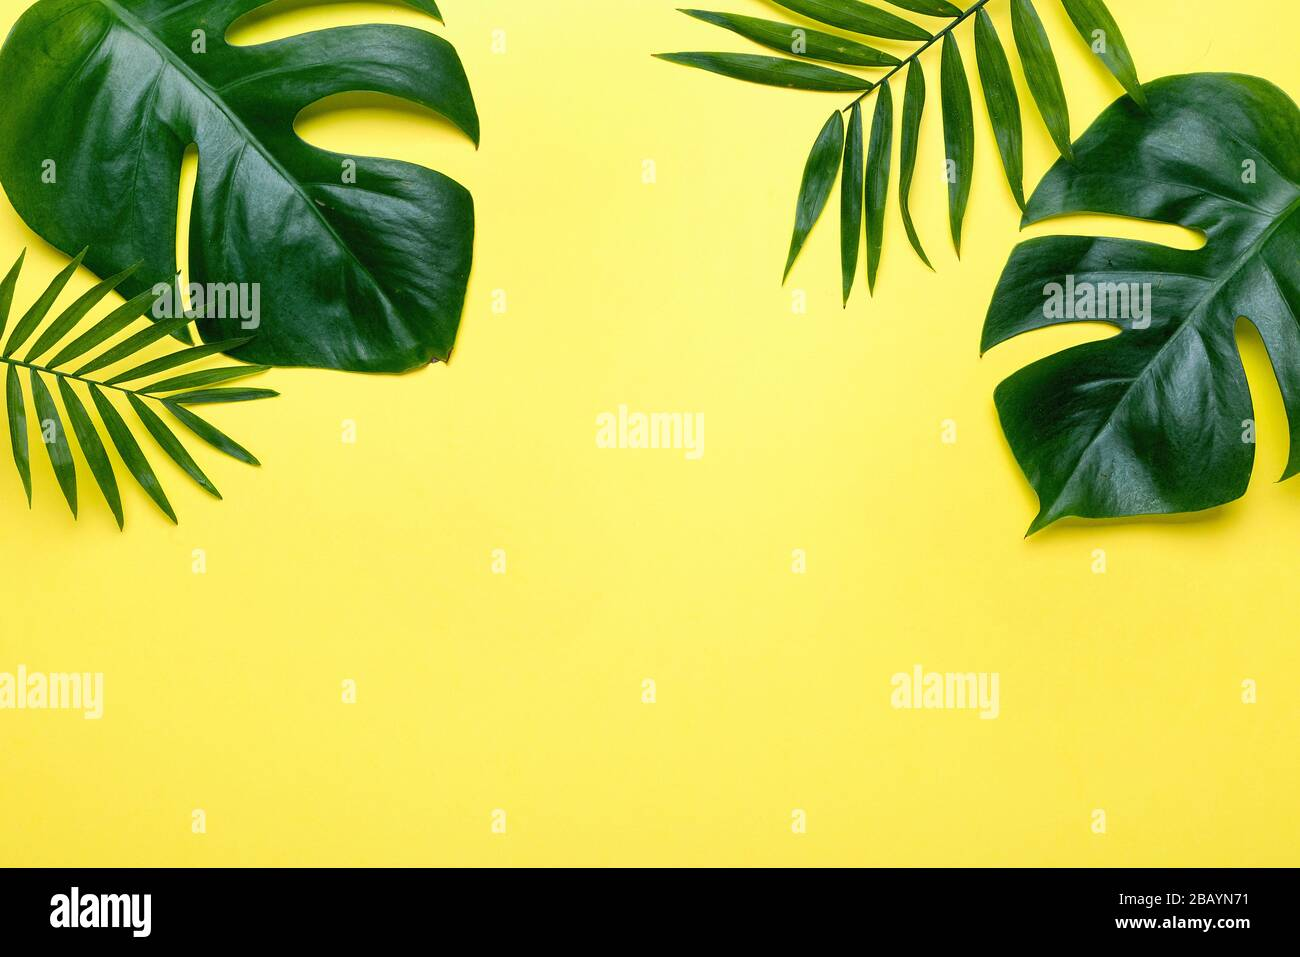 Frame Of Tropical Leaves Monstera And Palm On Yellow Background A Space For Text Top View Flat Lay Stock Photo Alamy Download a free preview or high quality adobe illustrator ai, eps, pdf and high resolution jpeg versions. https www alamy com frame of tropical leaves monstera and palm on yellow background a space for text top view flat lay image350963285 html